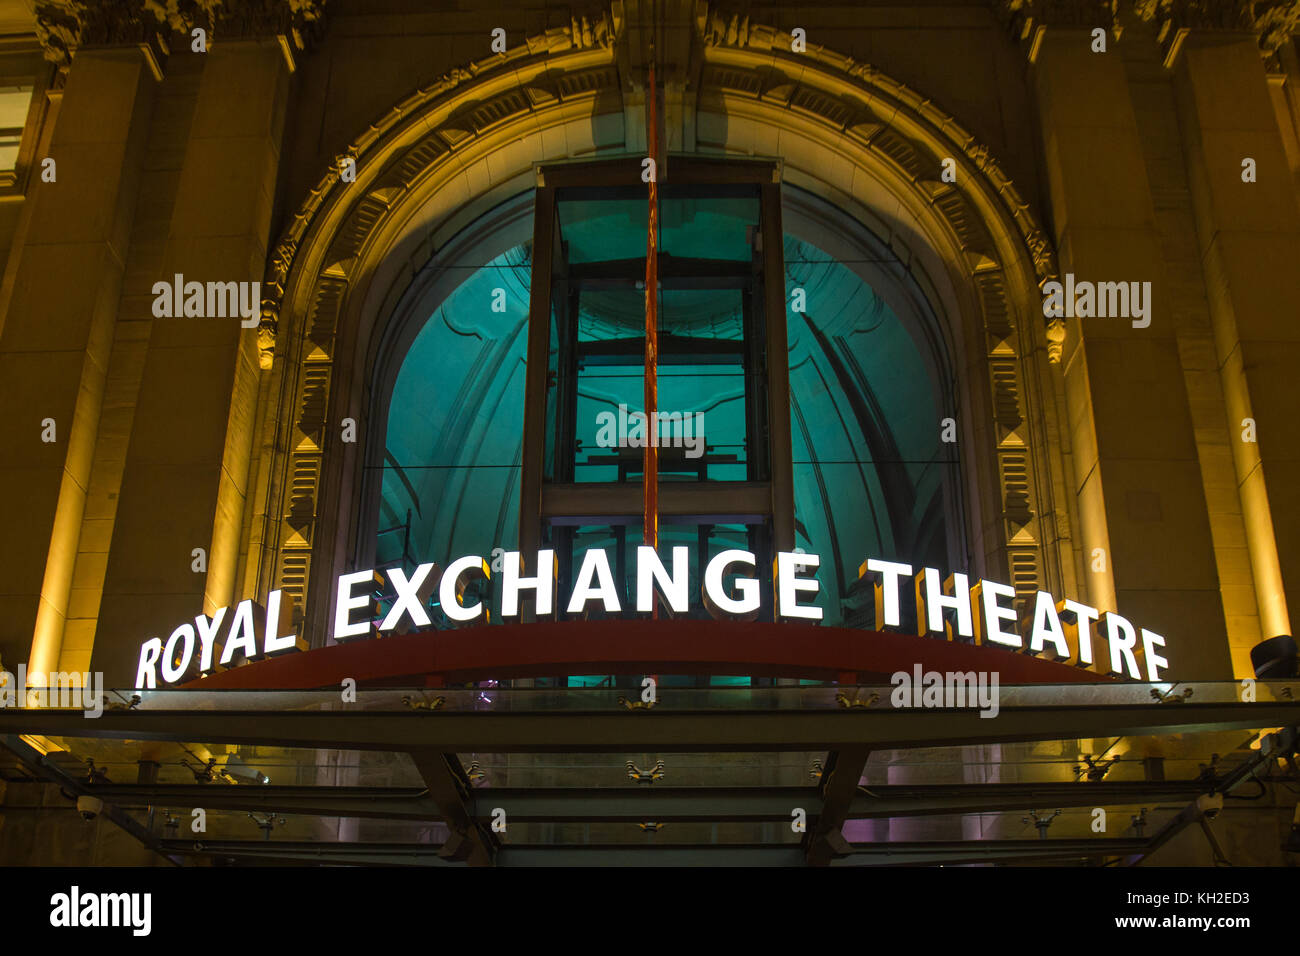 Manchester Royal Exchange Theatre building entrance  lit up at night on St Annes Square, Manchester, UK. Take on - Stock Image